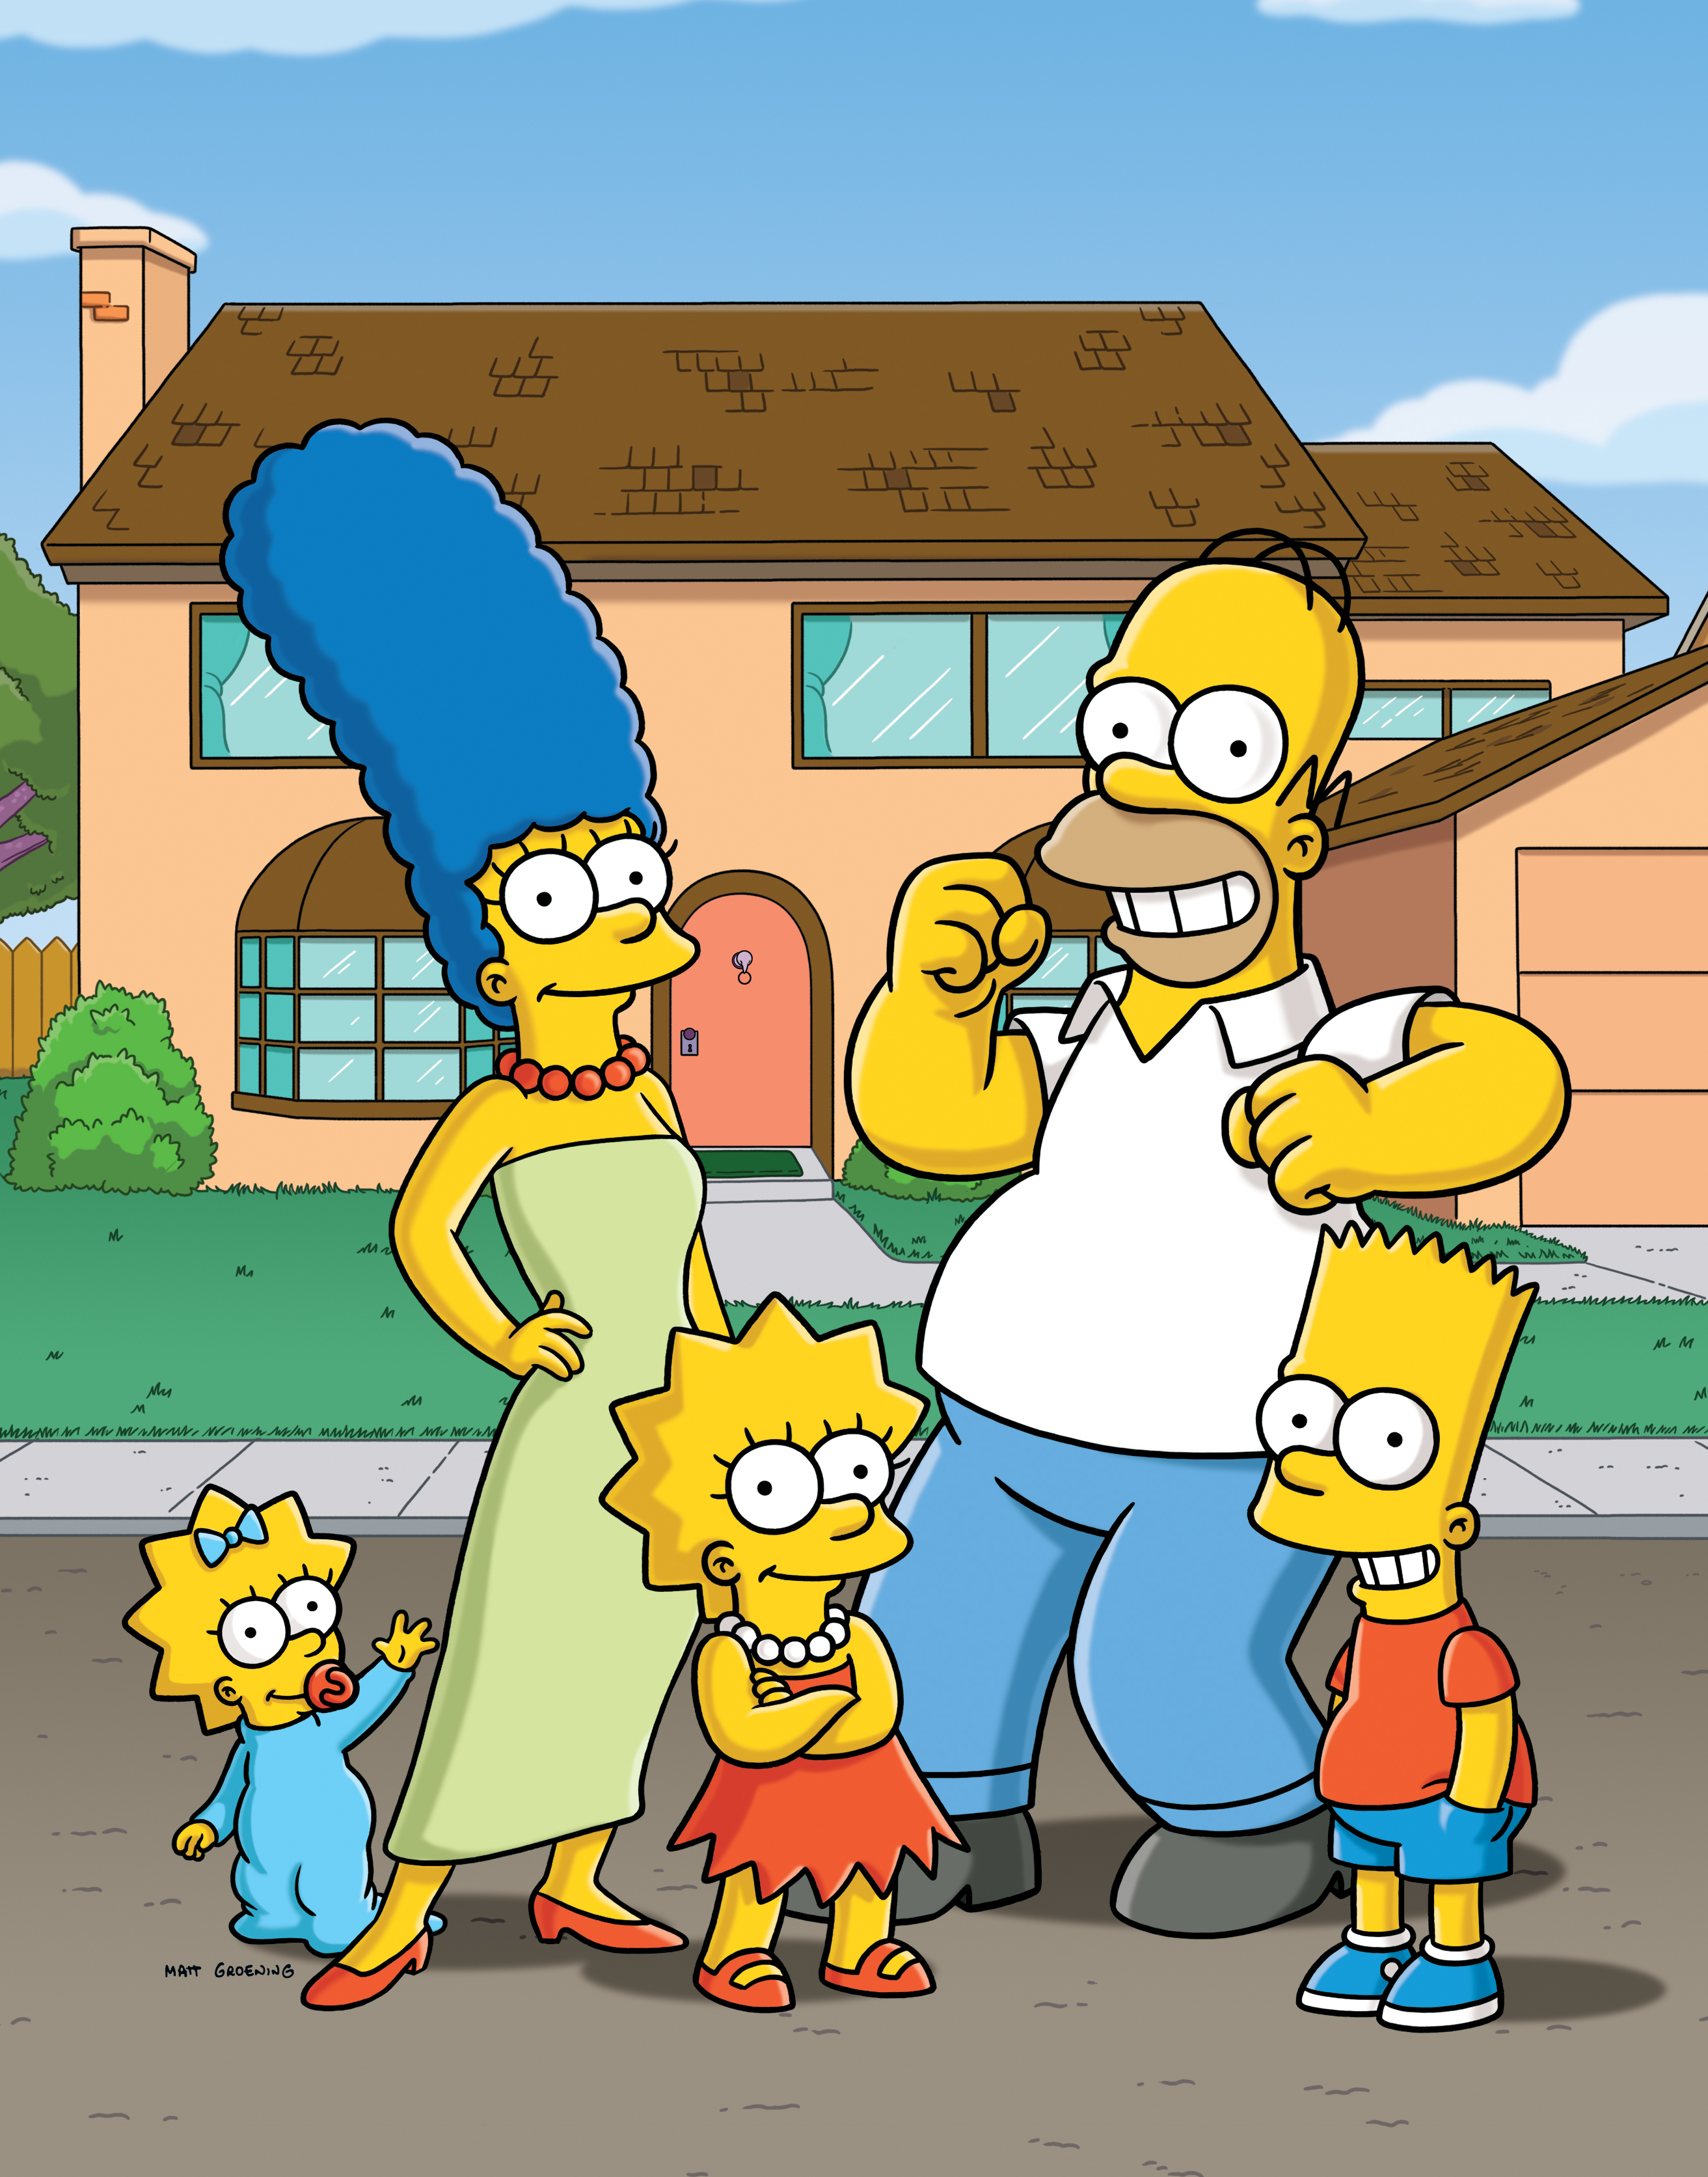 The Simpsons renewed for 27th and 28th seasons